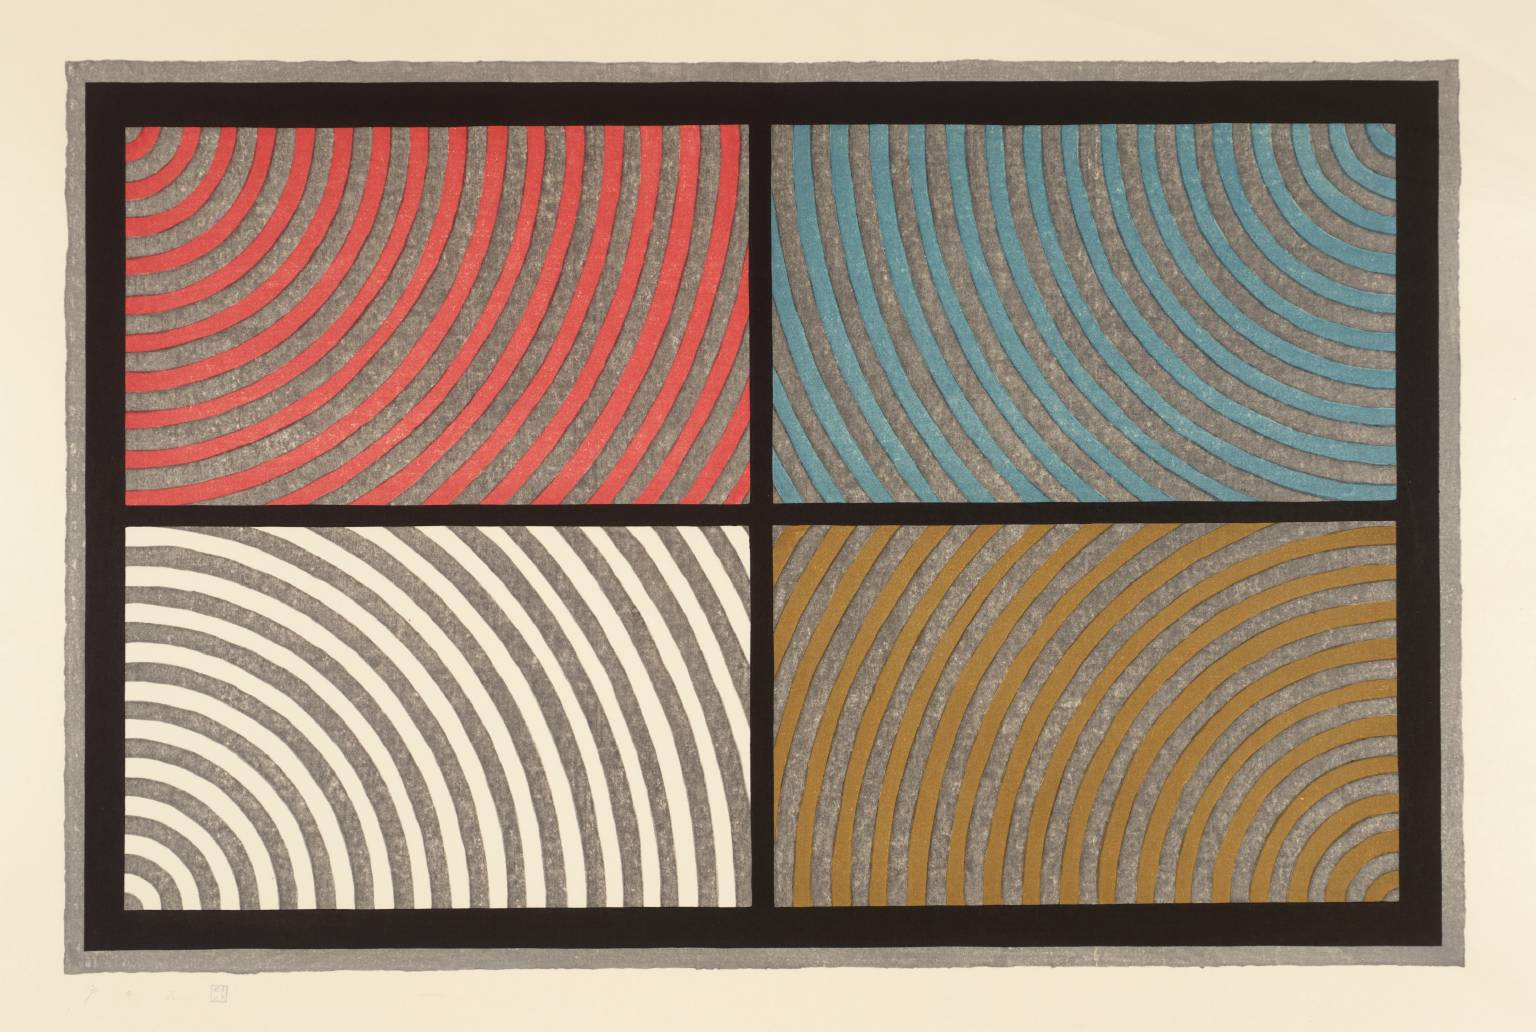 """<span class=""""link fancybox-details-link""""><a href=""""/exhibitions/23/works/artworks1028/"""">View Detail Page</a></span><div class=""""artist""""><strong>Sol LeWitt</strong></div> 1928-2007<div class=""""title""""><em>Arcs from 4 Corners</em>, 1986</div><div class=""""signed_and_dated"""">signed and numbered from the edition of 100</div><div class=""""medium"""">wood-cut on Echizen Torinoko paper</div><div class=""""dimensions"""">58 x 82.5cm</div>"""